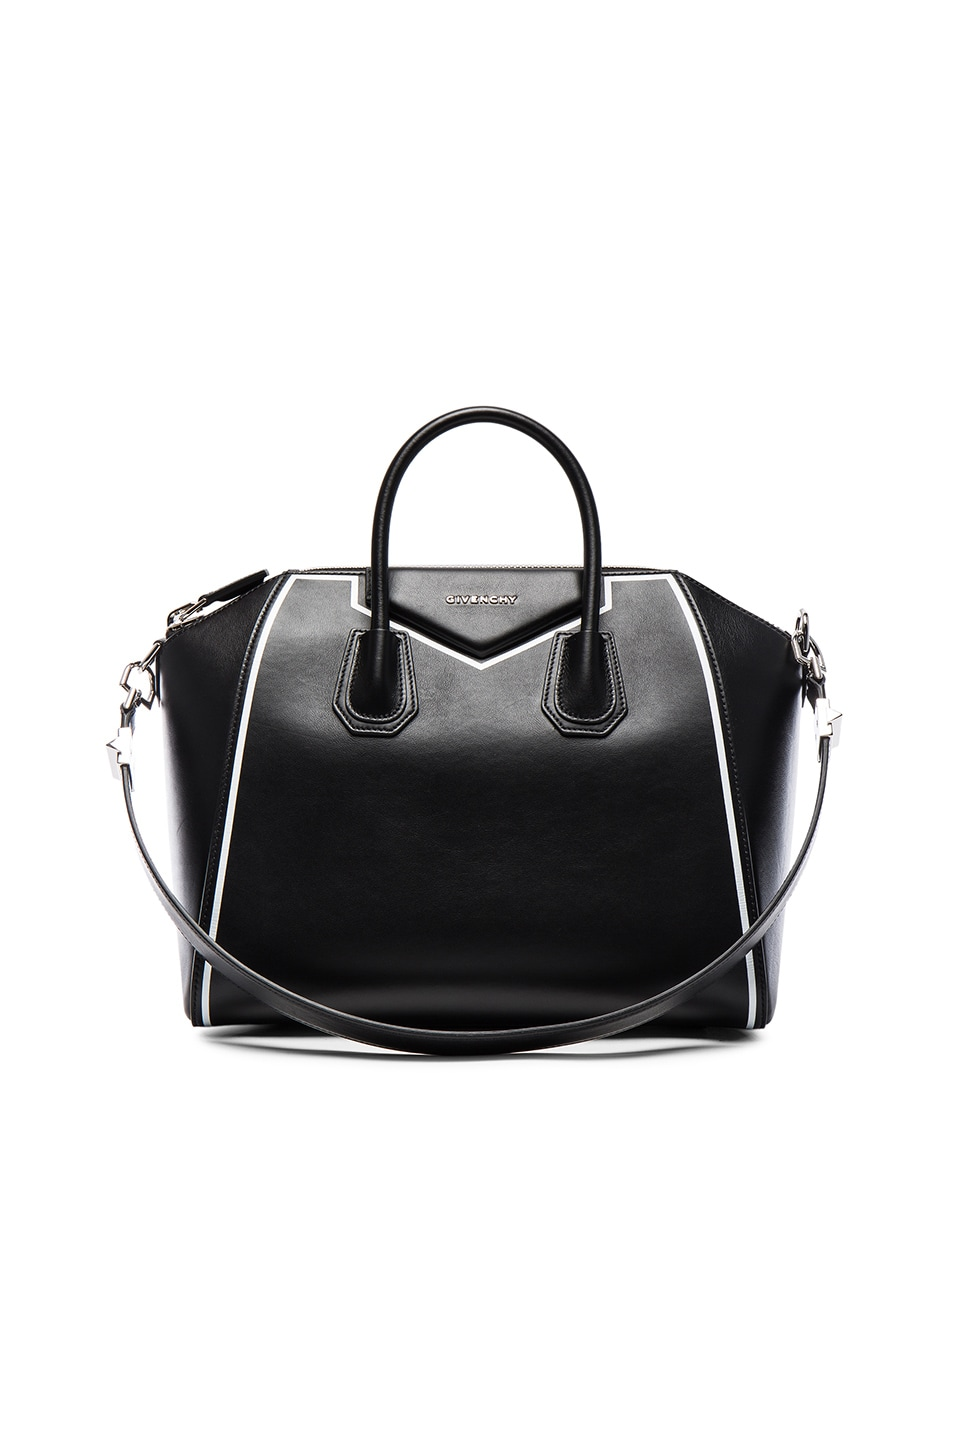 Givenchy Medium Antigona Leather Bag W Stitching Black White